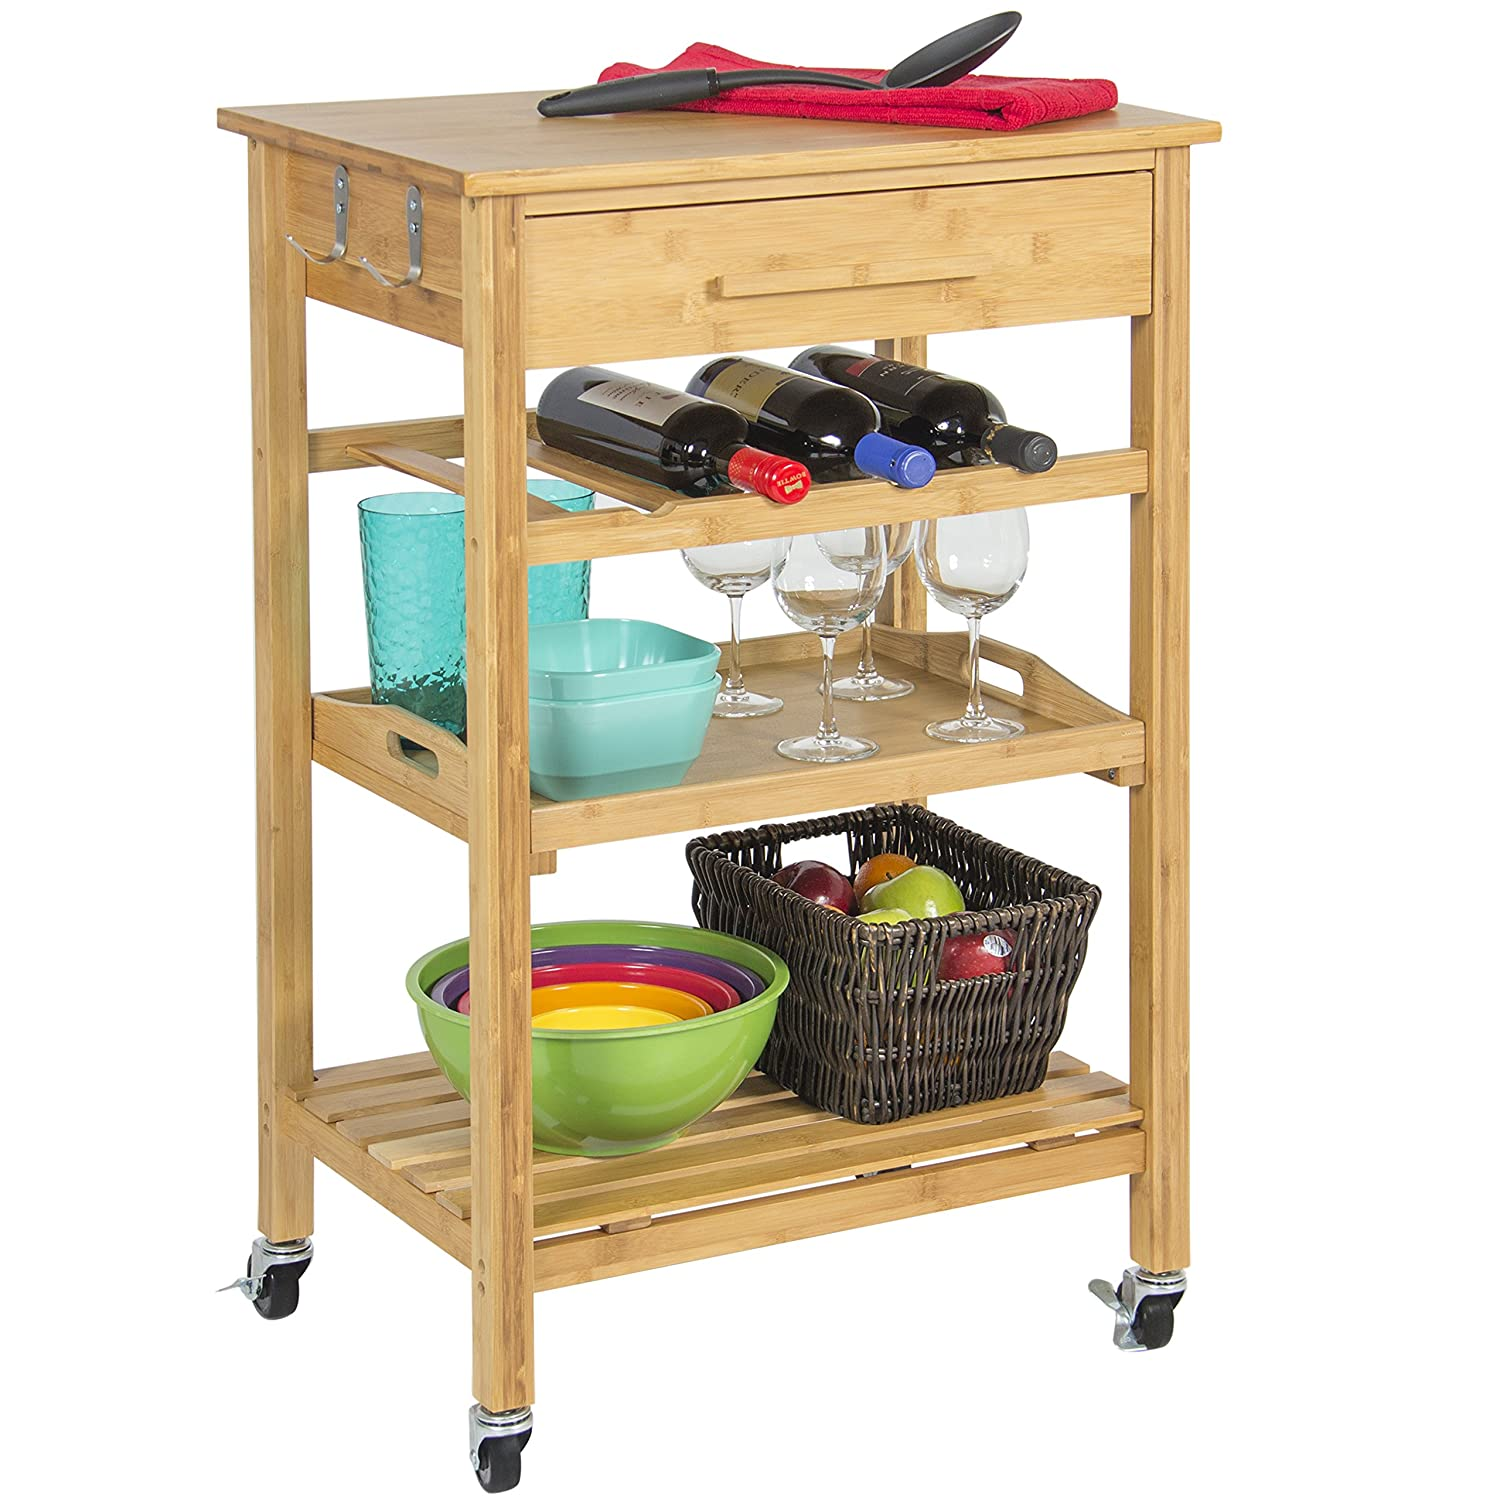 Best Choice Products Rolling Wood Kitchen Storage Cart Rack W/ Drawer And  Shelves Home Furniture - Brown